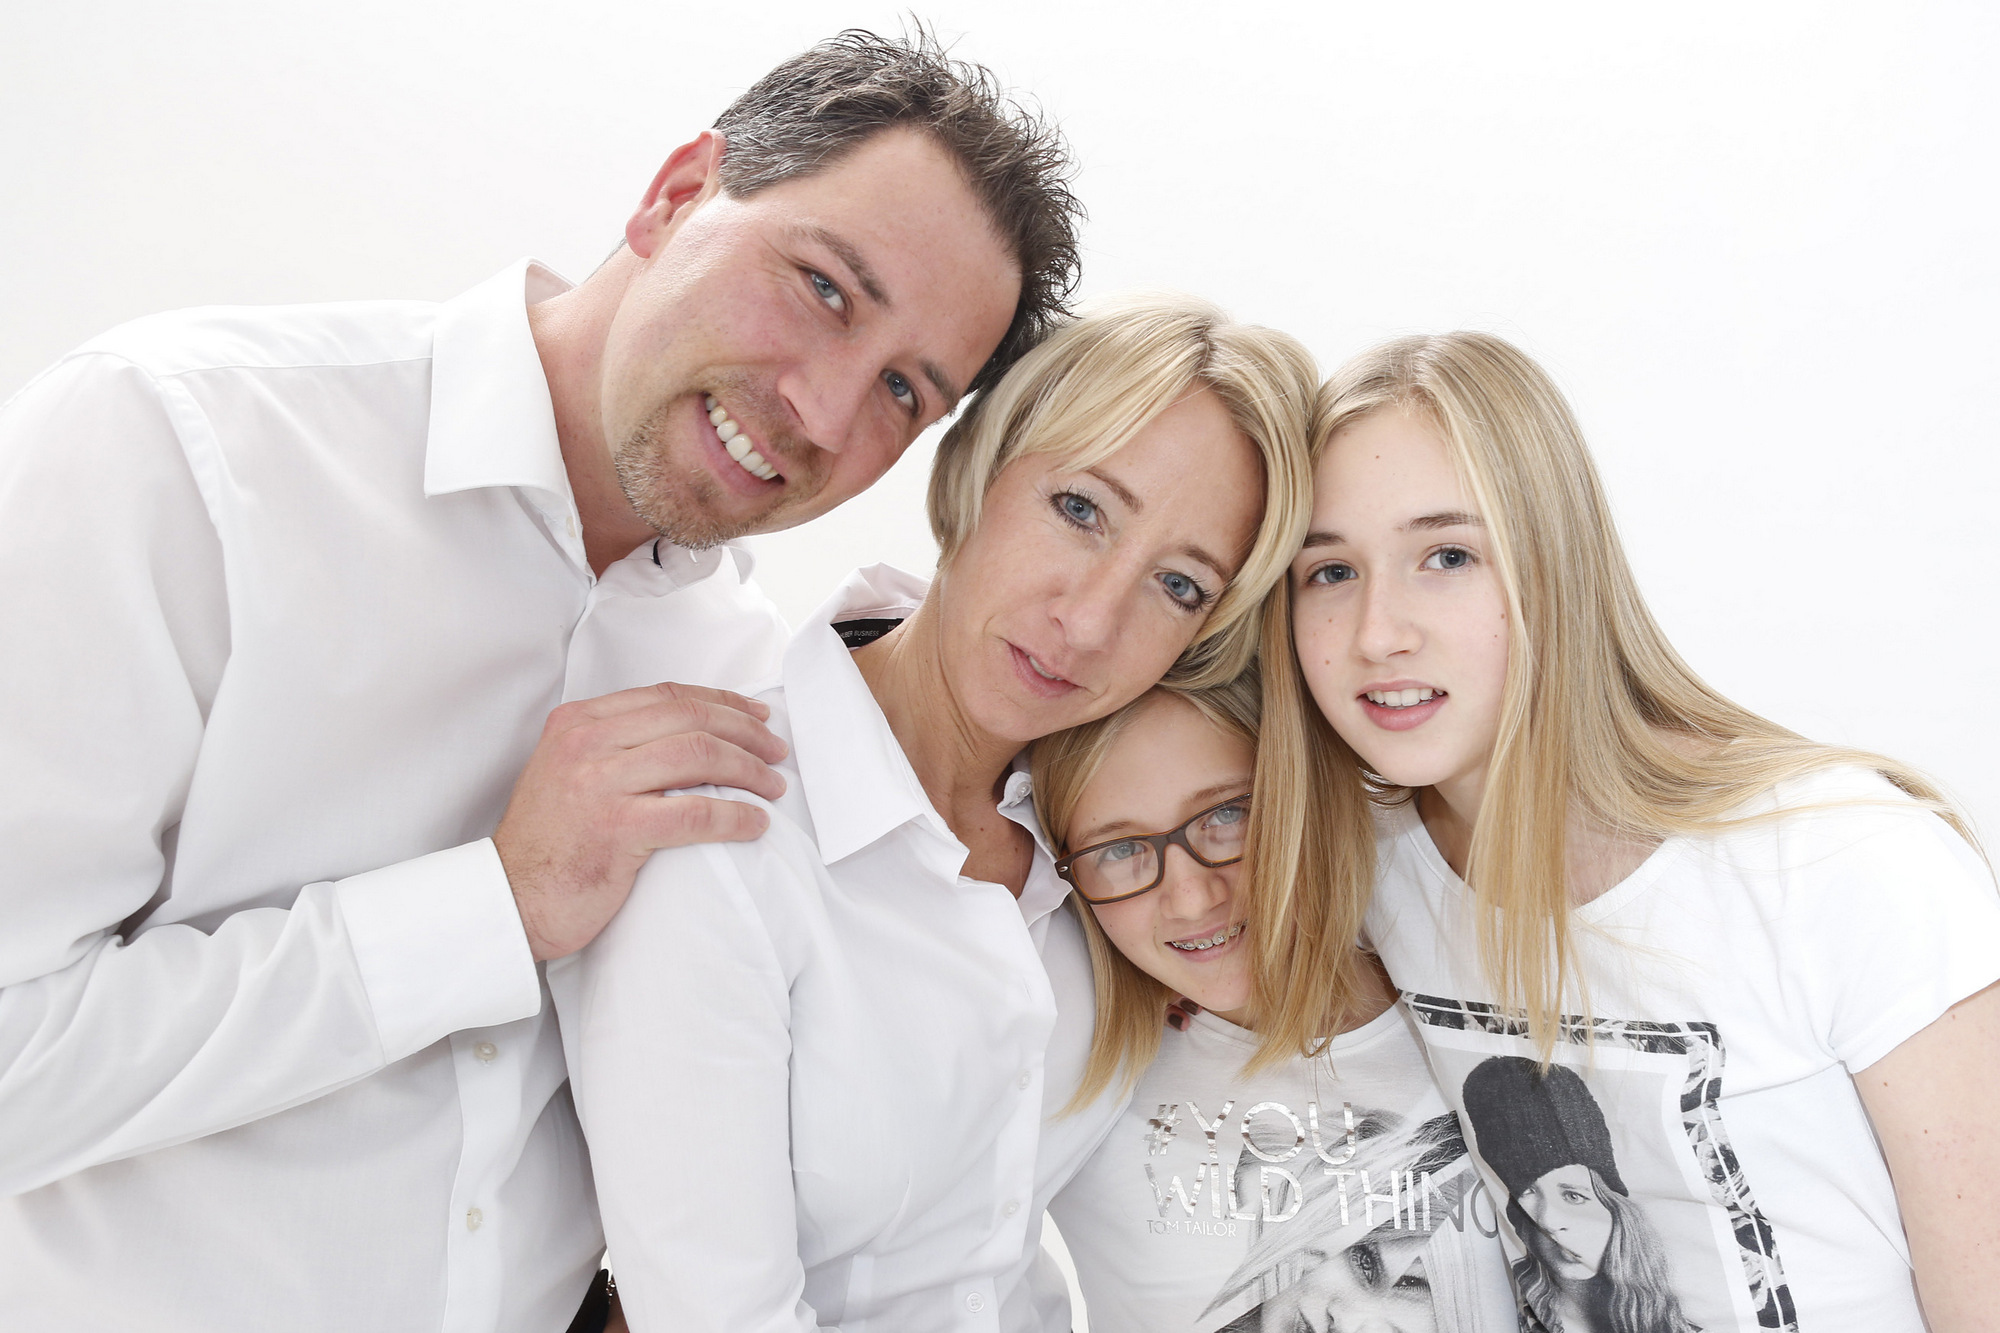 Familie_weiß_jeans